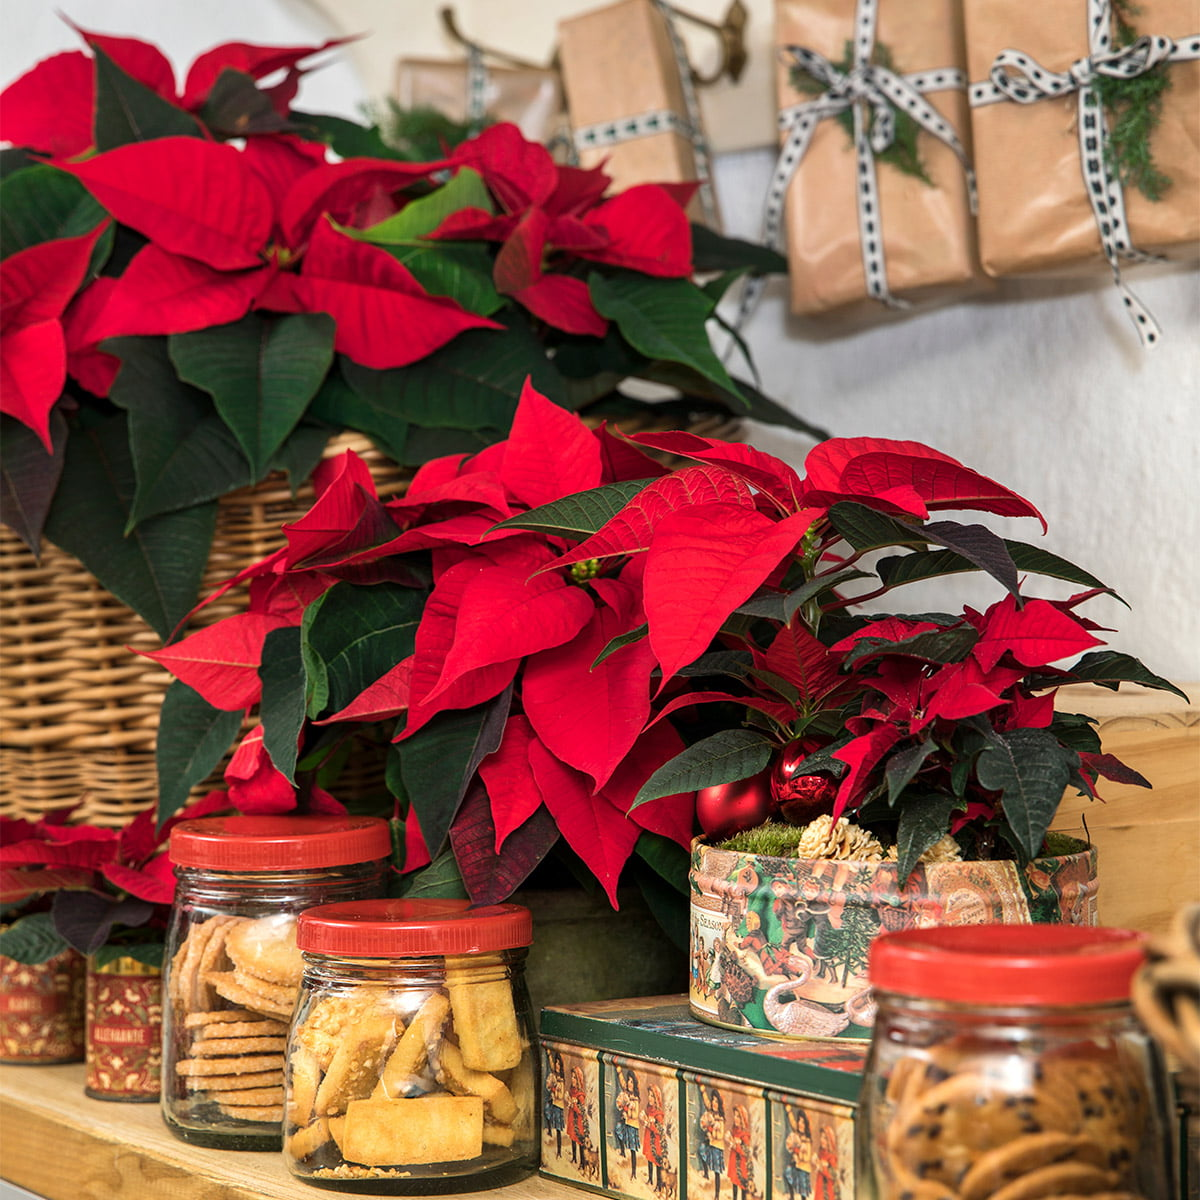 jars of biscuits and poinsettia plants on shelf